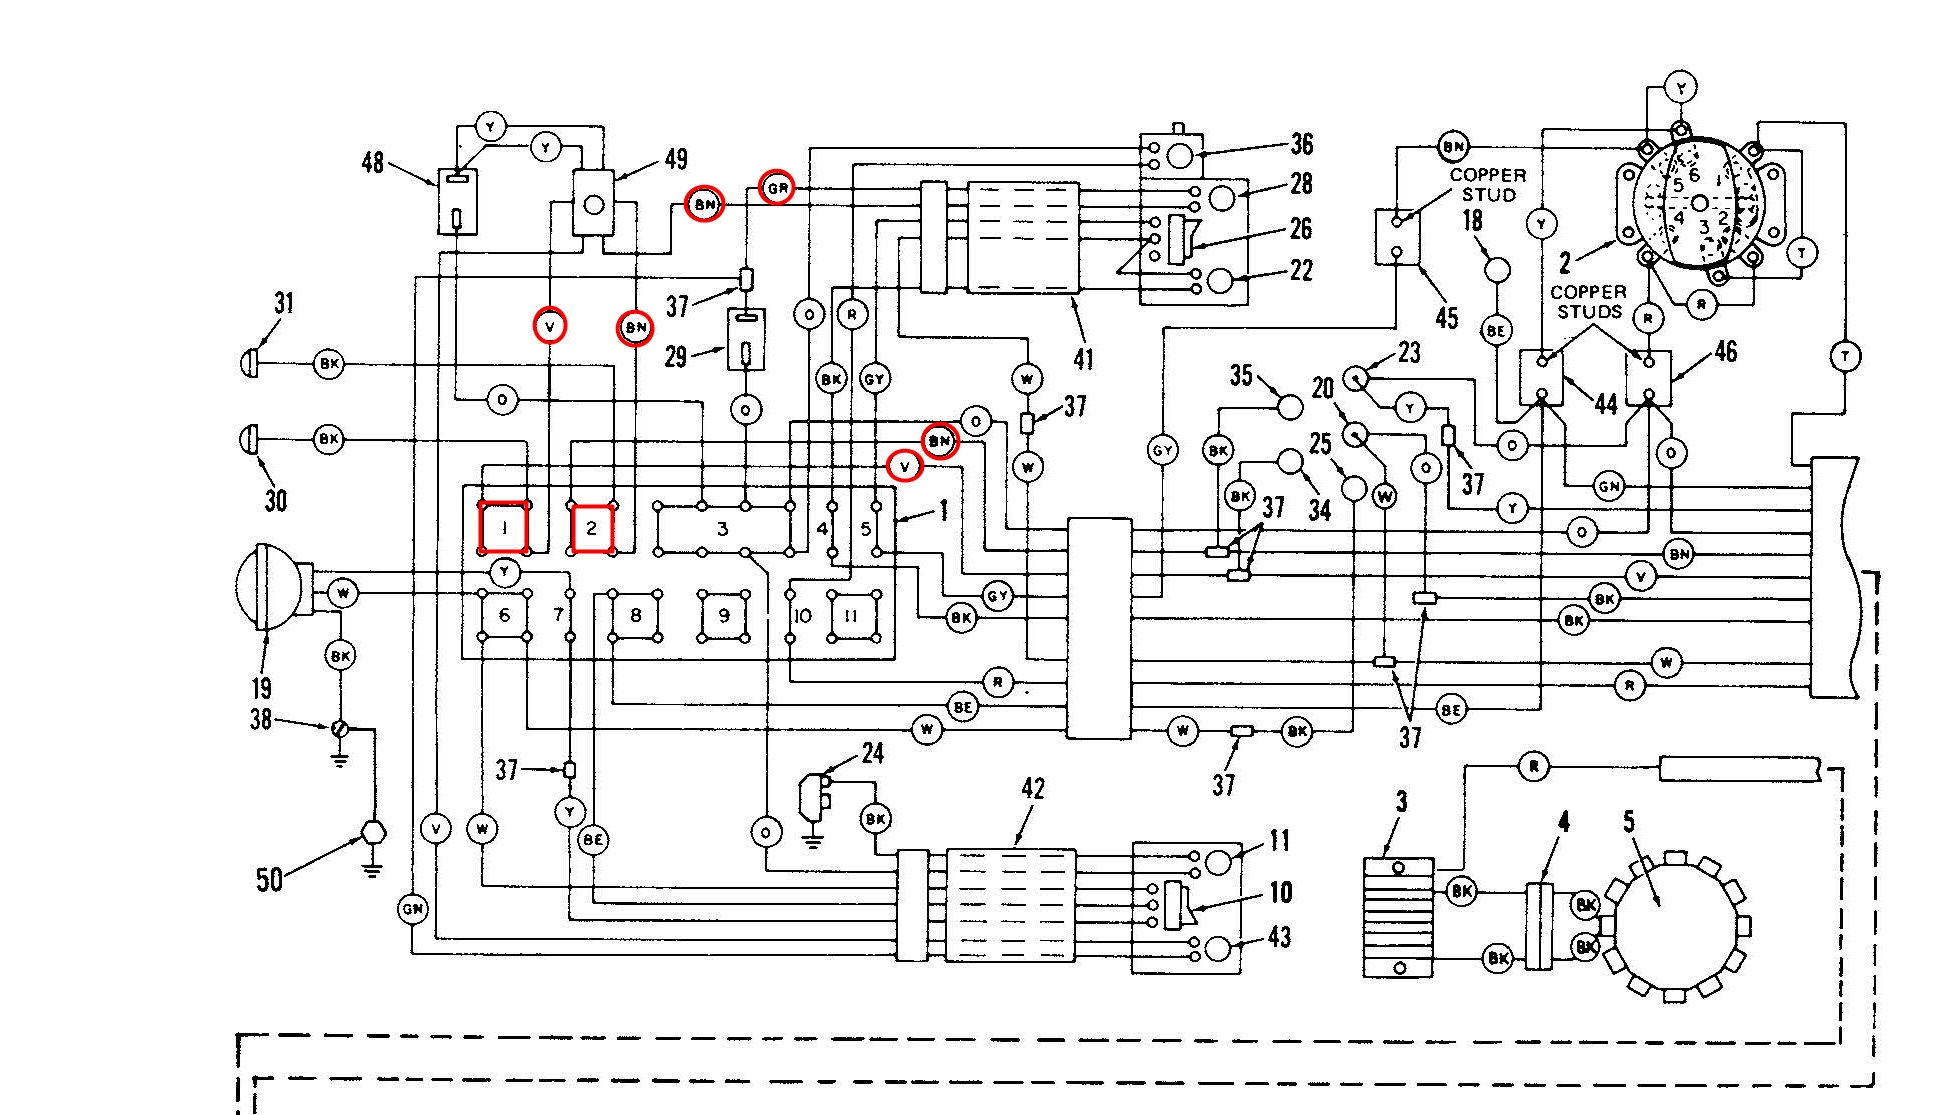 hight resolution of ory circuit diagram continued wiring diagram sheet ory circuit diagram continued